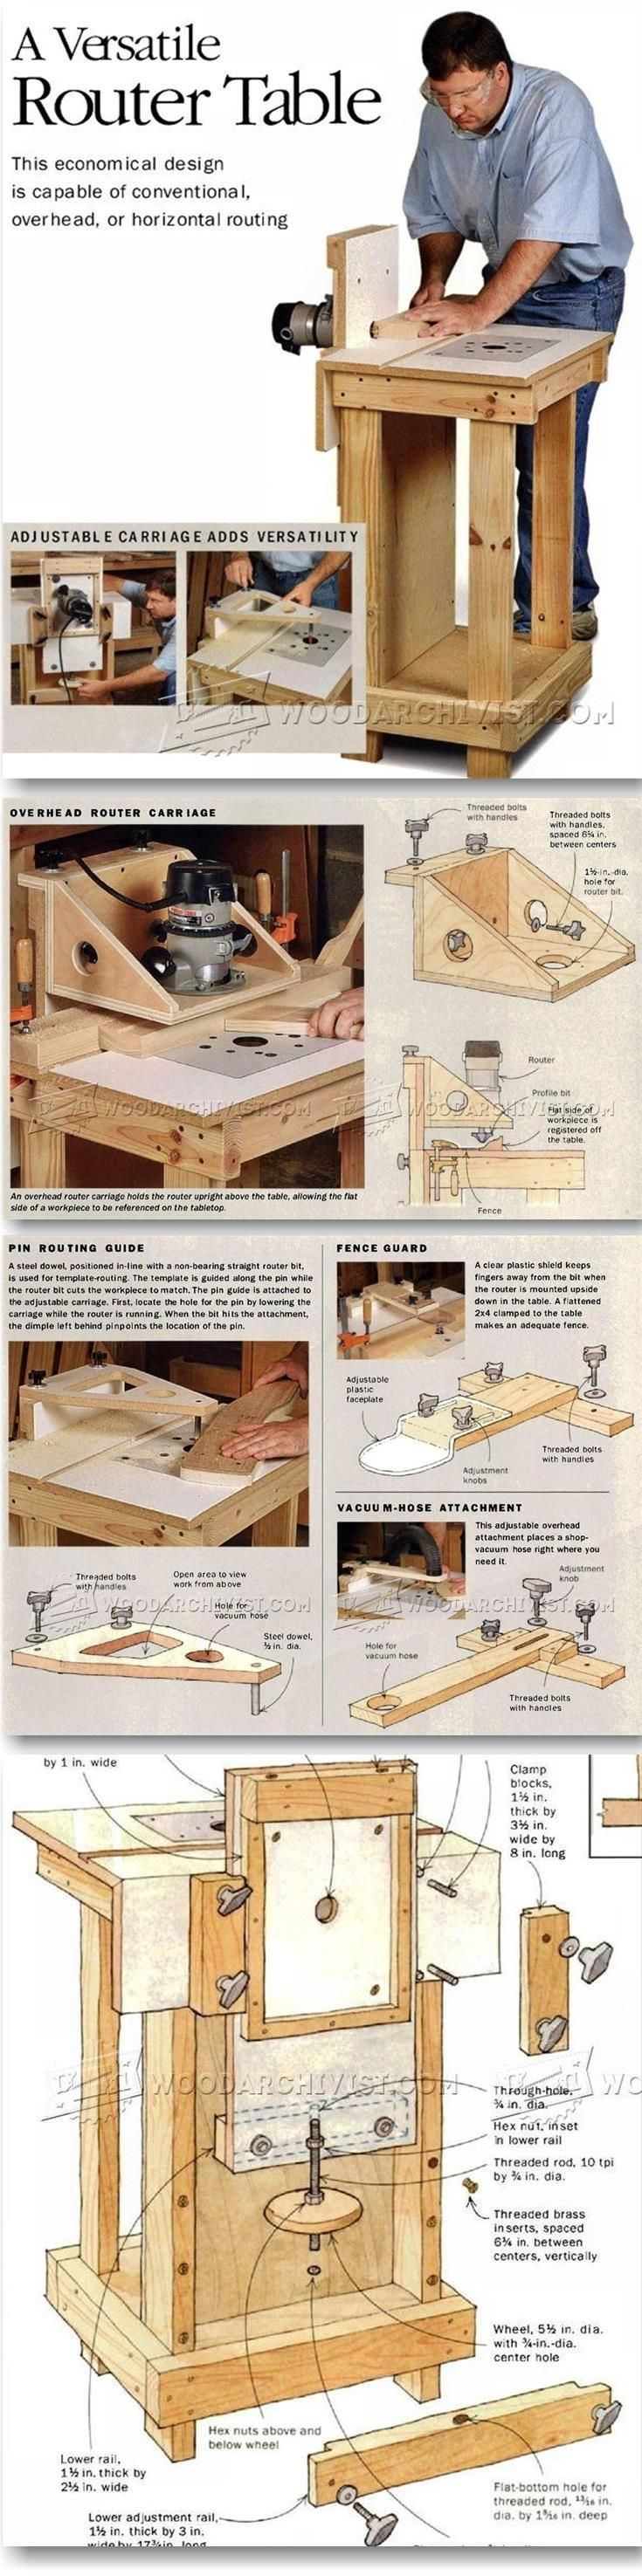 Horizontal Router Table Plans - Router Tips, Jigs and Fixtures | http://WoodArchivist.com